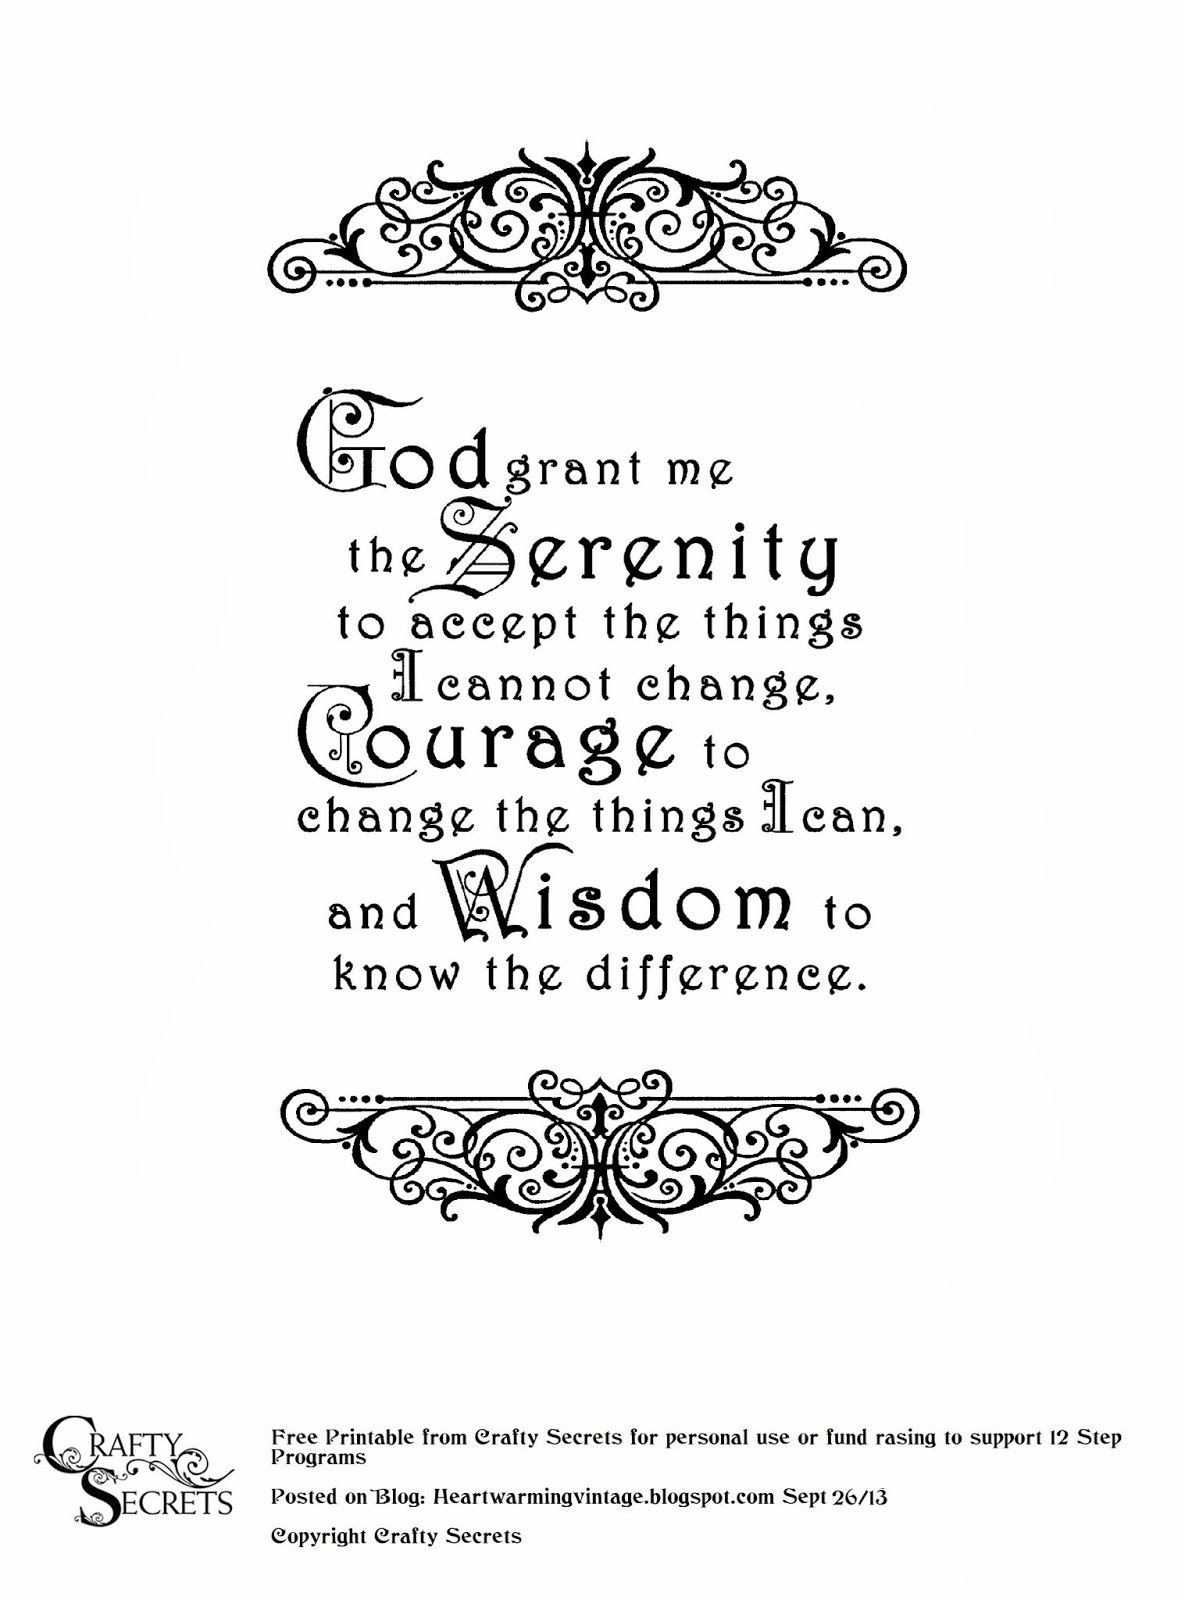 photograph regarding Serenity Prayer Printable identify Cunning Strategies Heartwarming Classic Suggestions and Rules: Absolutely free